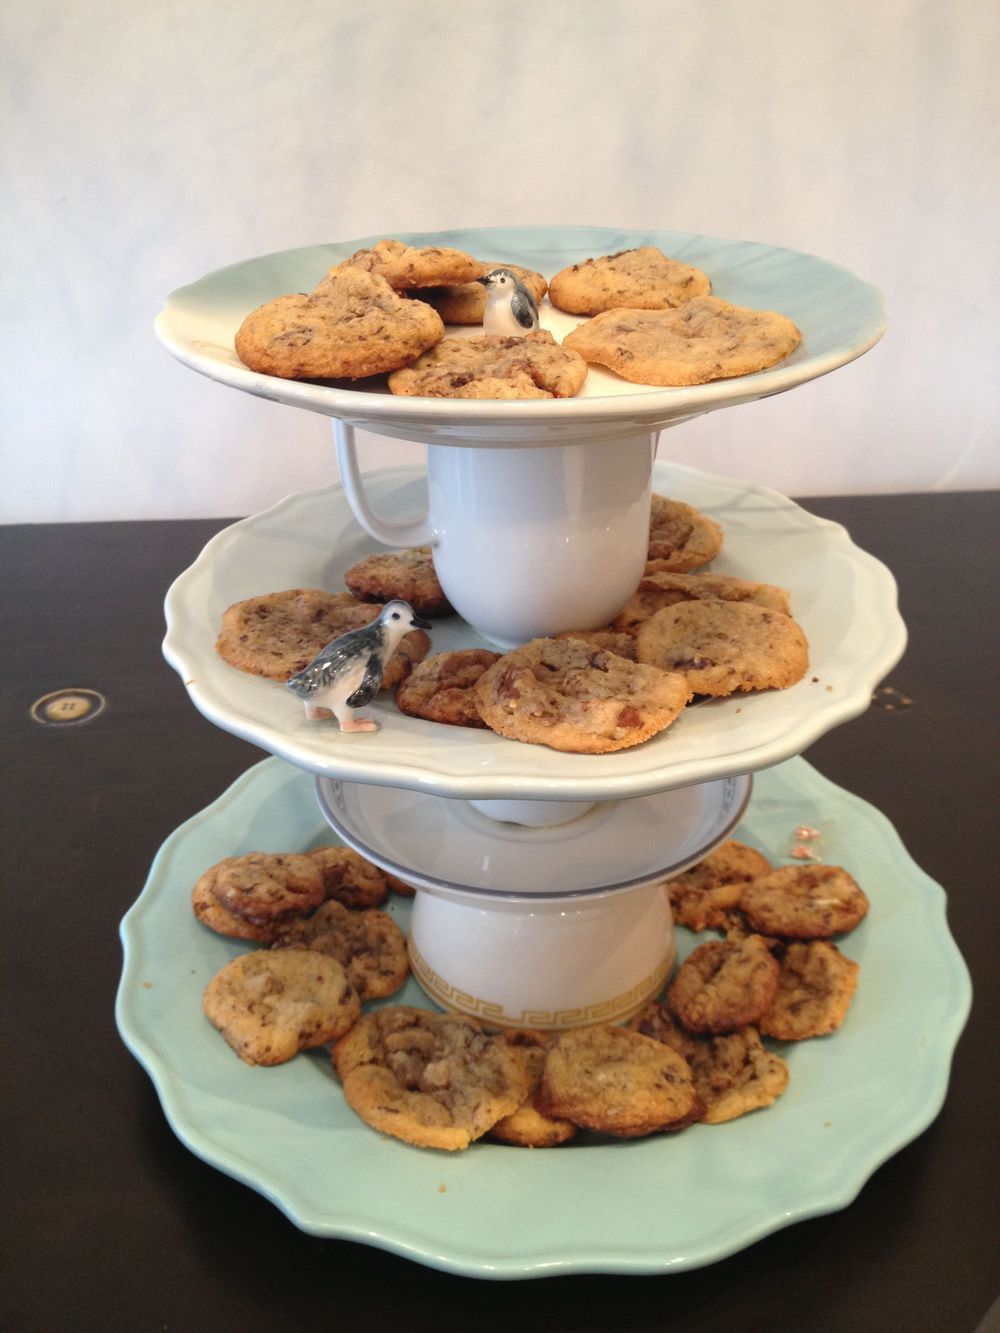 Lela made the cookies herself for us! - Photography by Laura Dombrowski of COUTUREcolorado